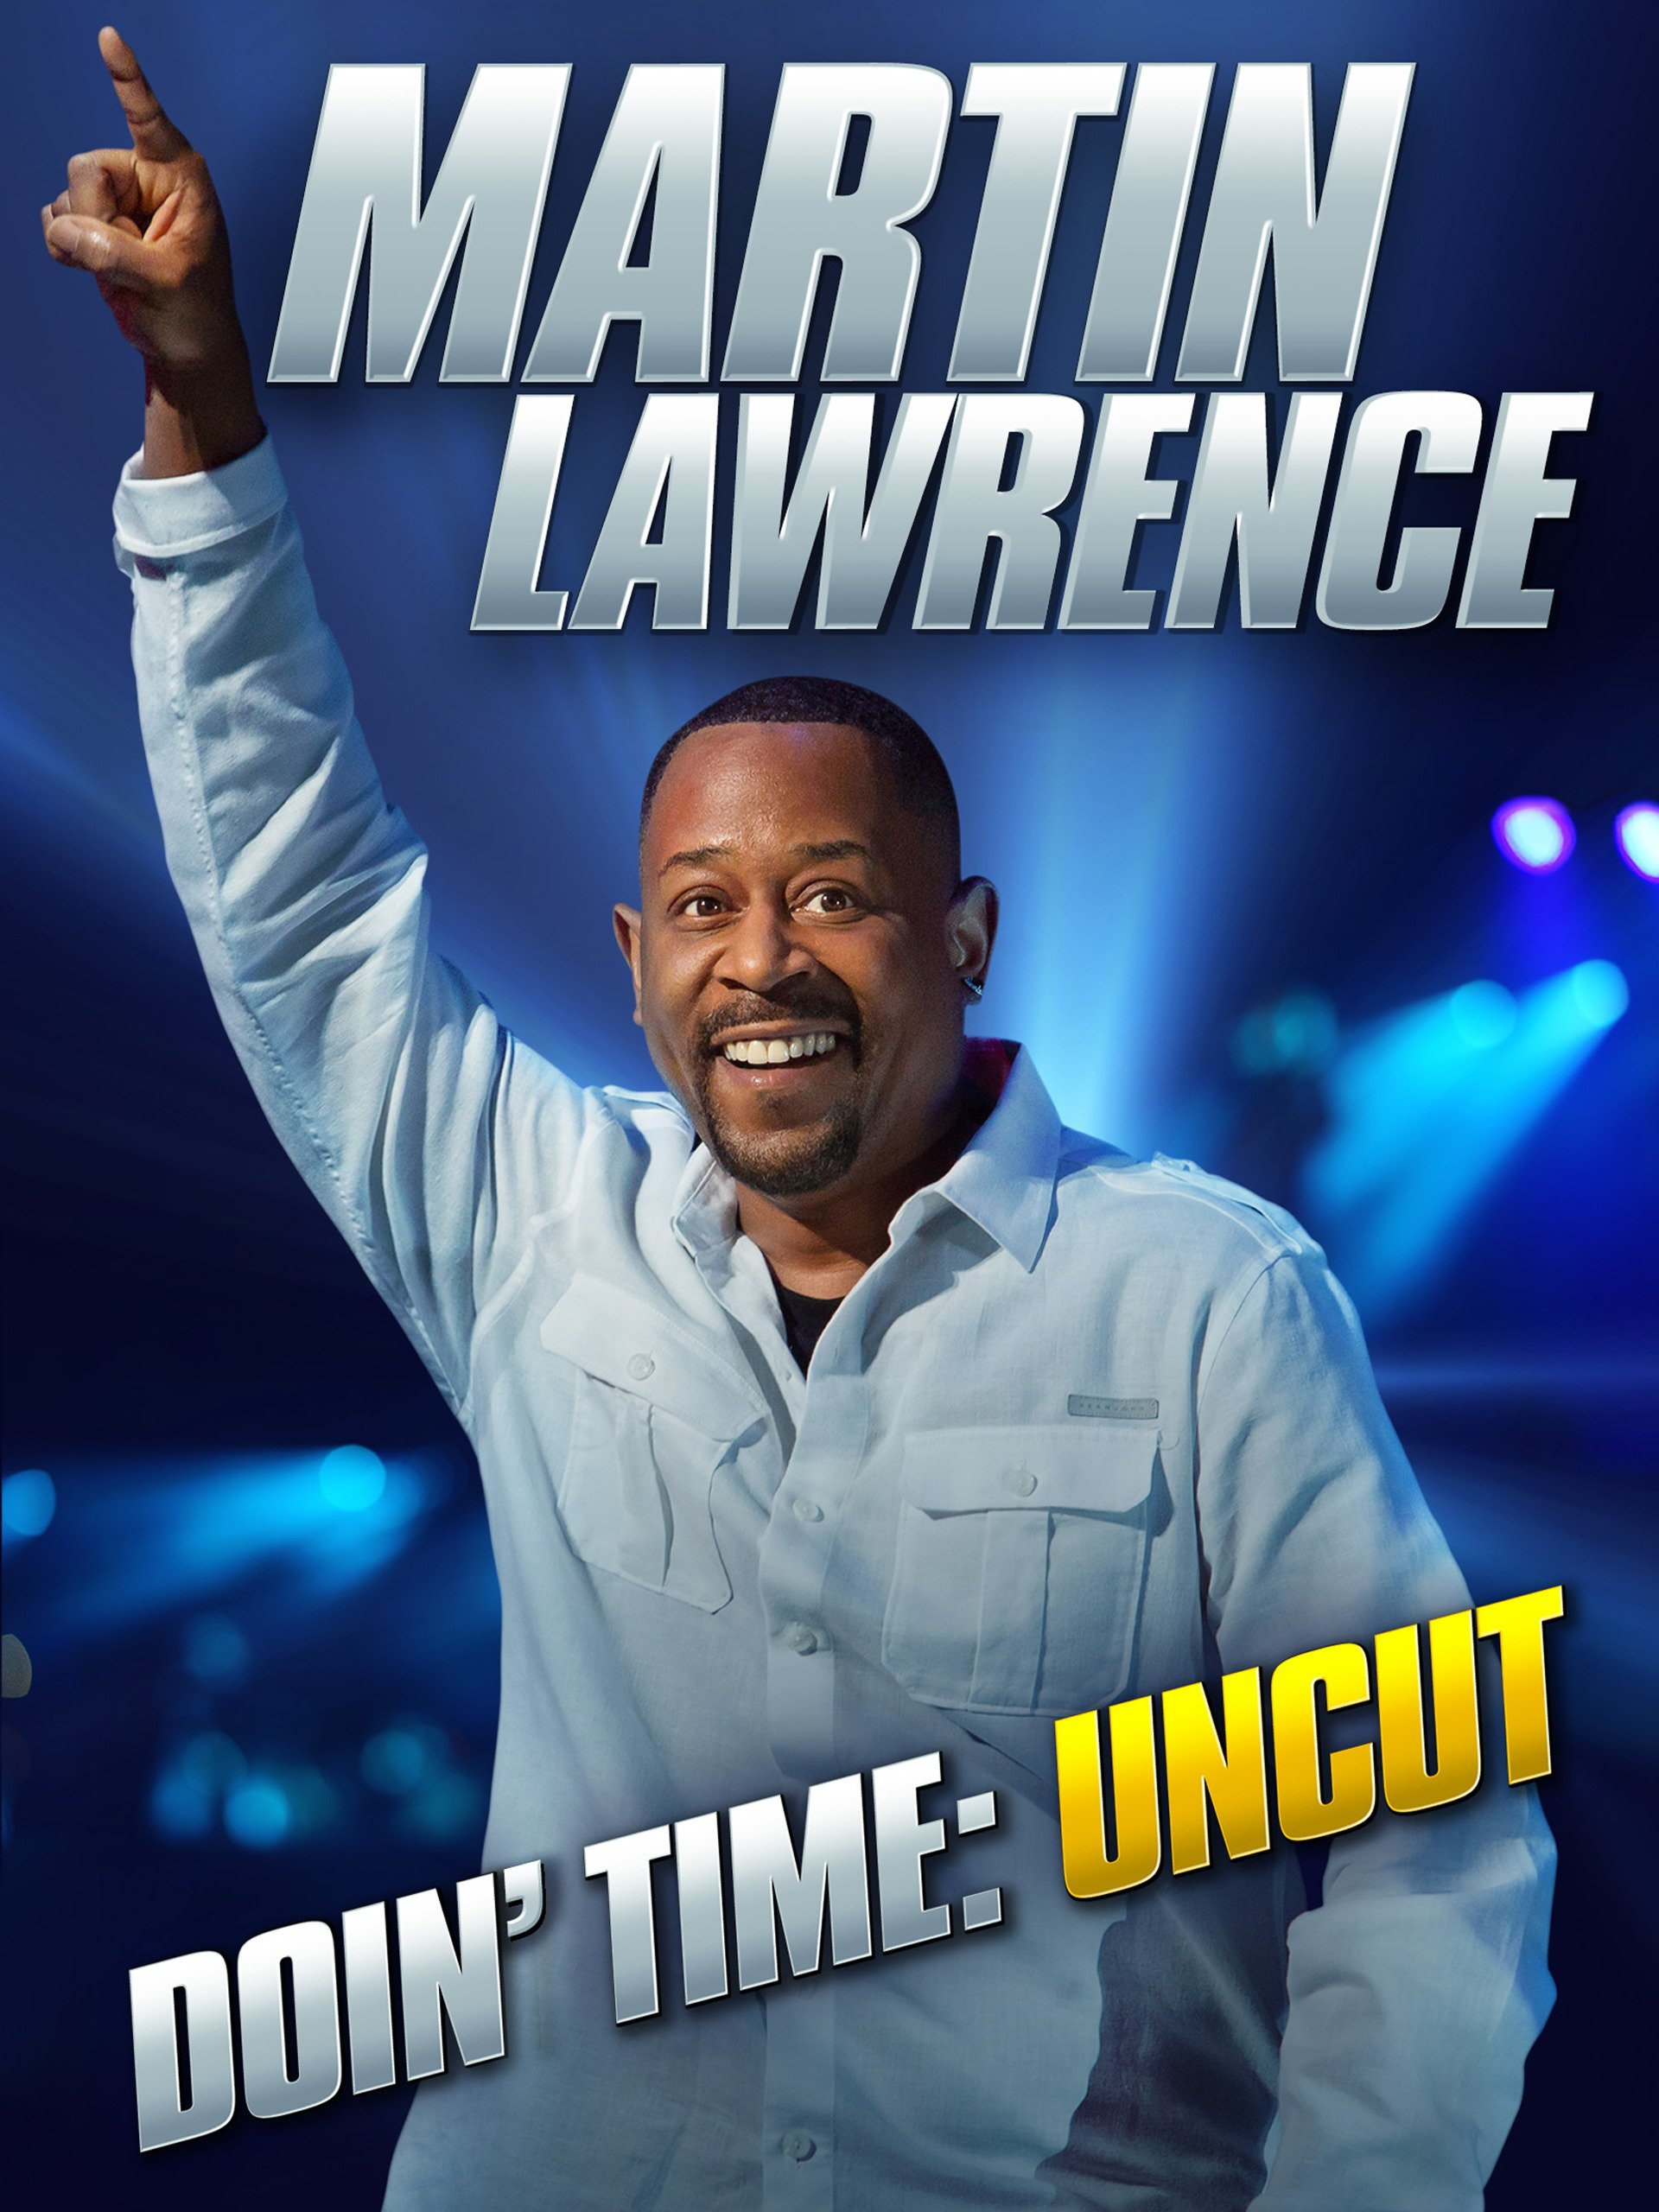 Martin lawrence sports betting book indystar sports betting